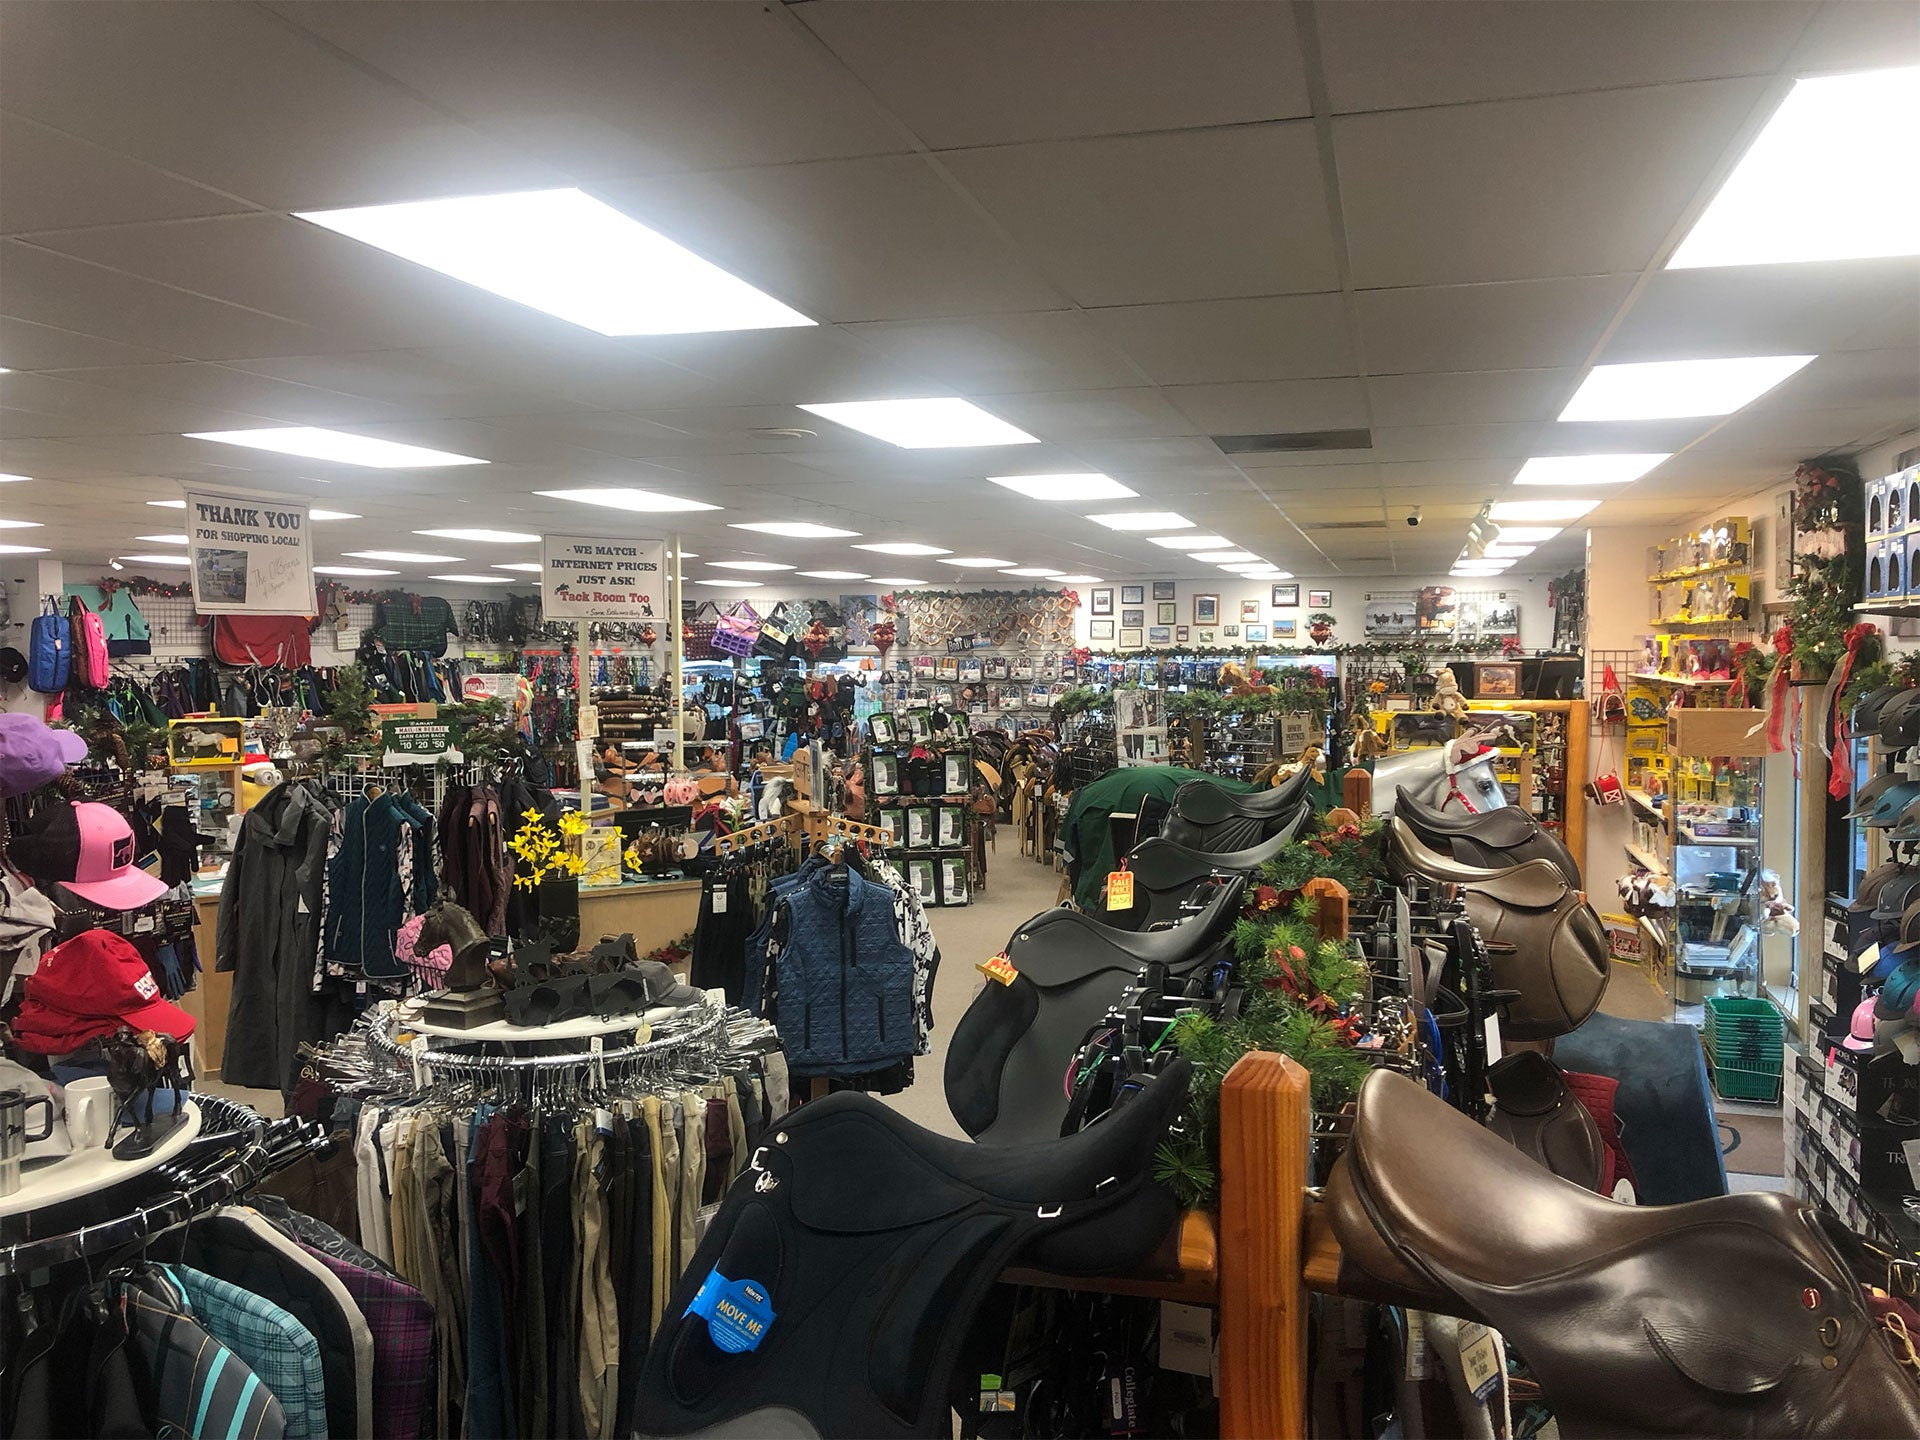 THE STORE – Tack Room Too